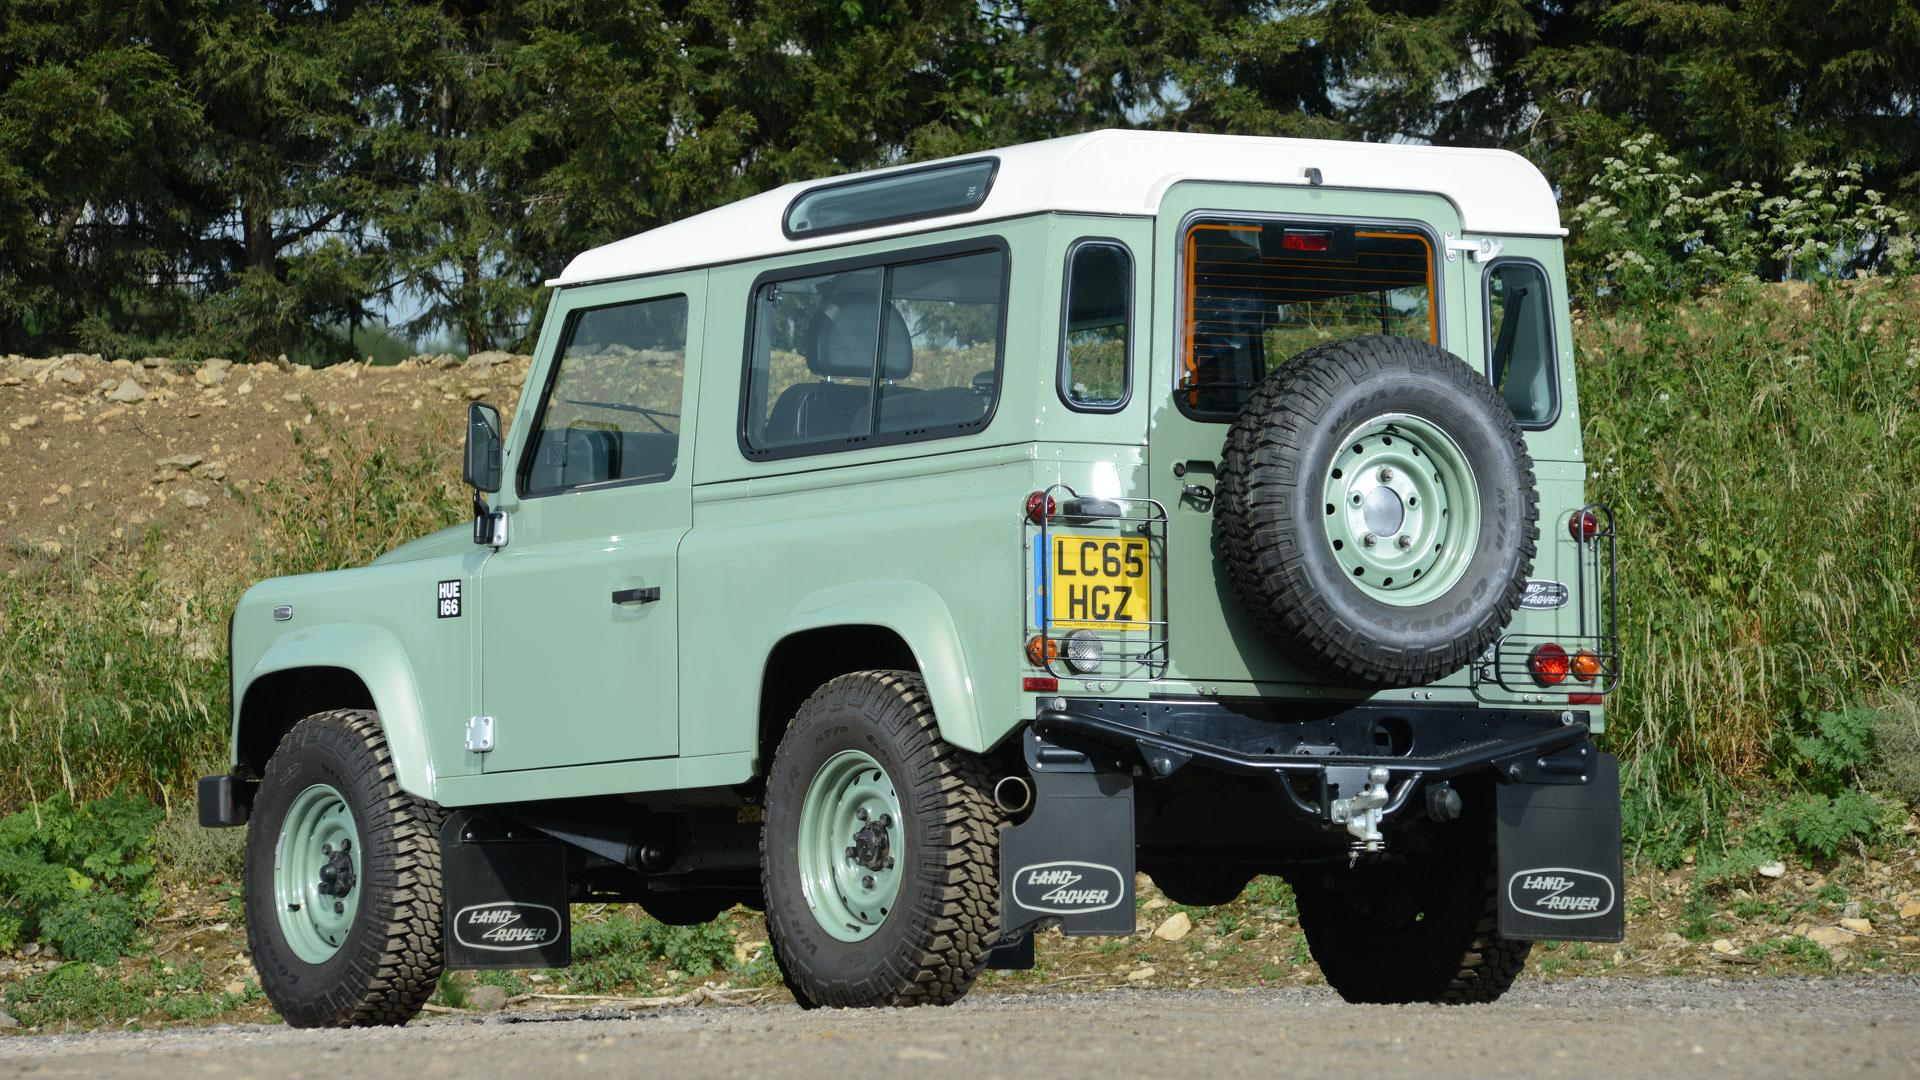 the rover en heritage motion s be will landrover design defender defenders news polarizing motor next buy quarter three in land front